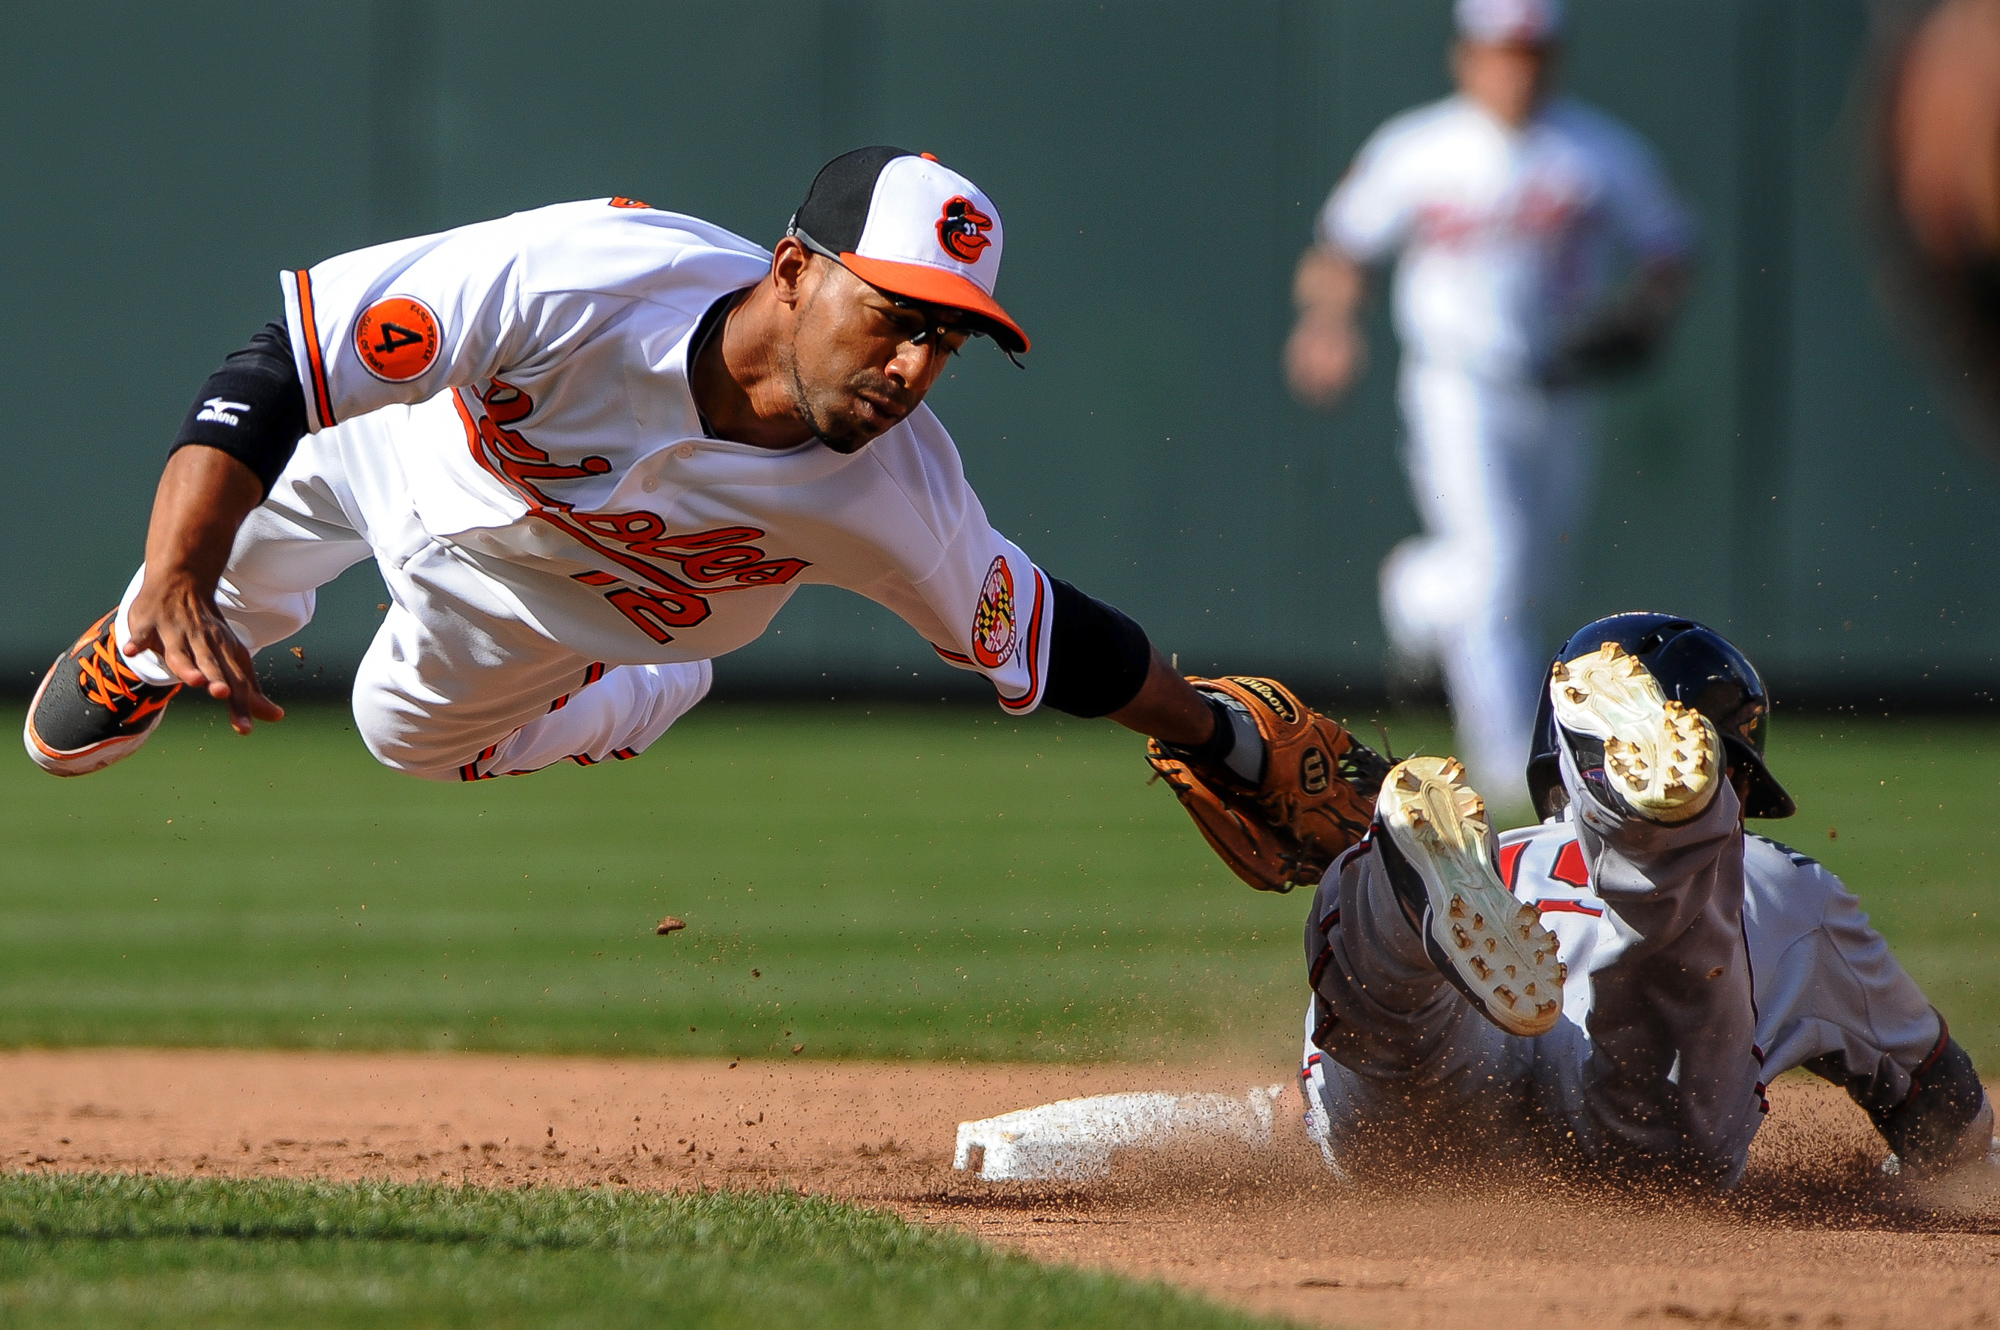 Baltimore Orioles second baseman Alexi Casillas makes the tag in the top of the fifth inning against the Minnesota Twins on April 7, 2013 in Baltimore, Md.